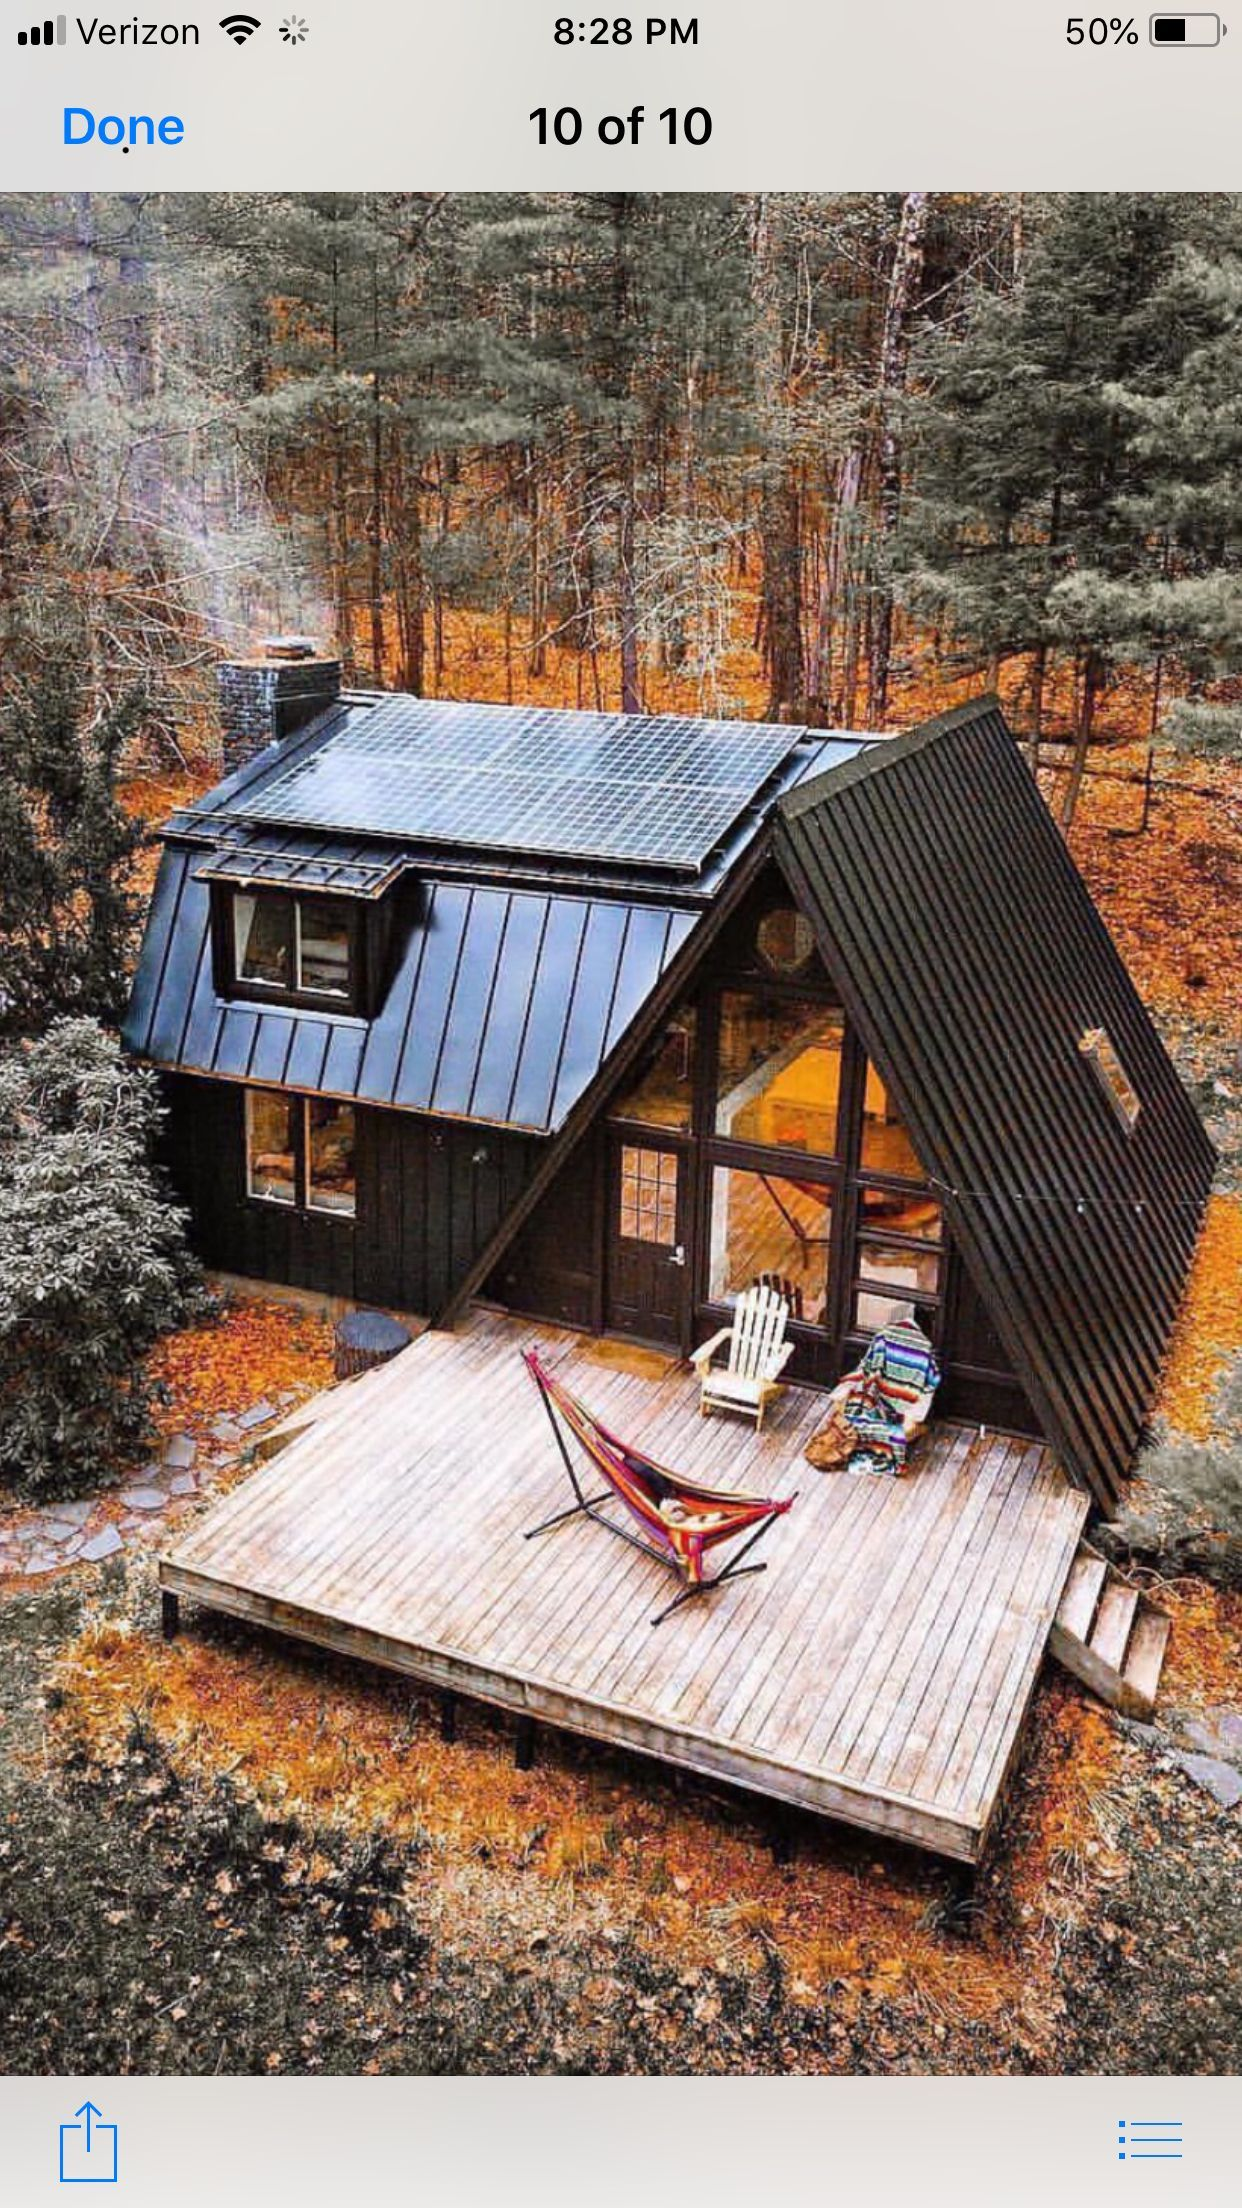 Fanatical Woodworking Outdoor Mason Jars Craftcocktails Woodworkingtipsyoutube Tiny House Cabin House In The Woods Cabin Design